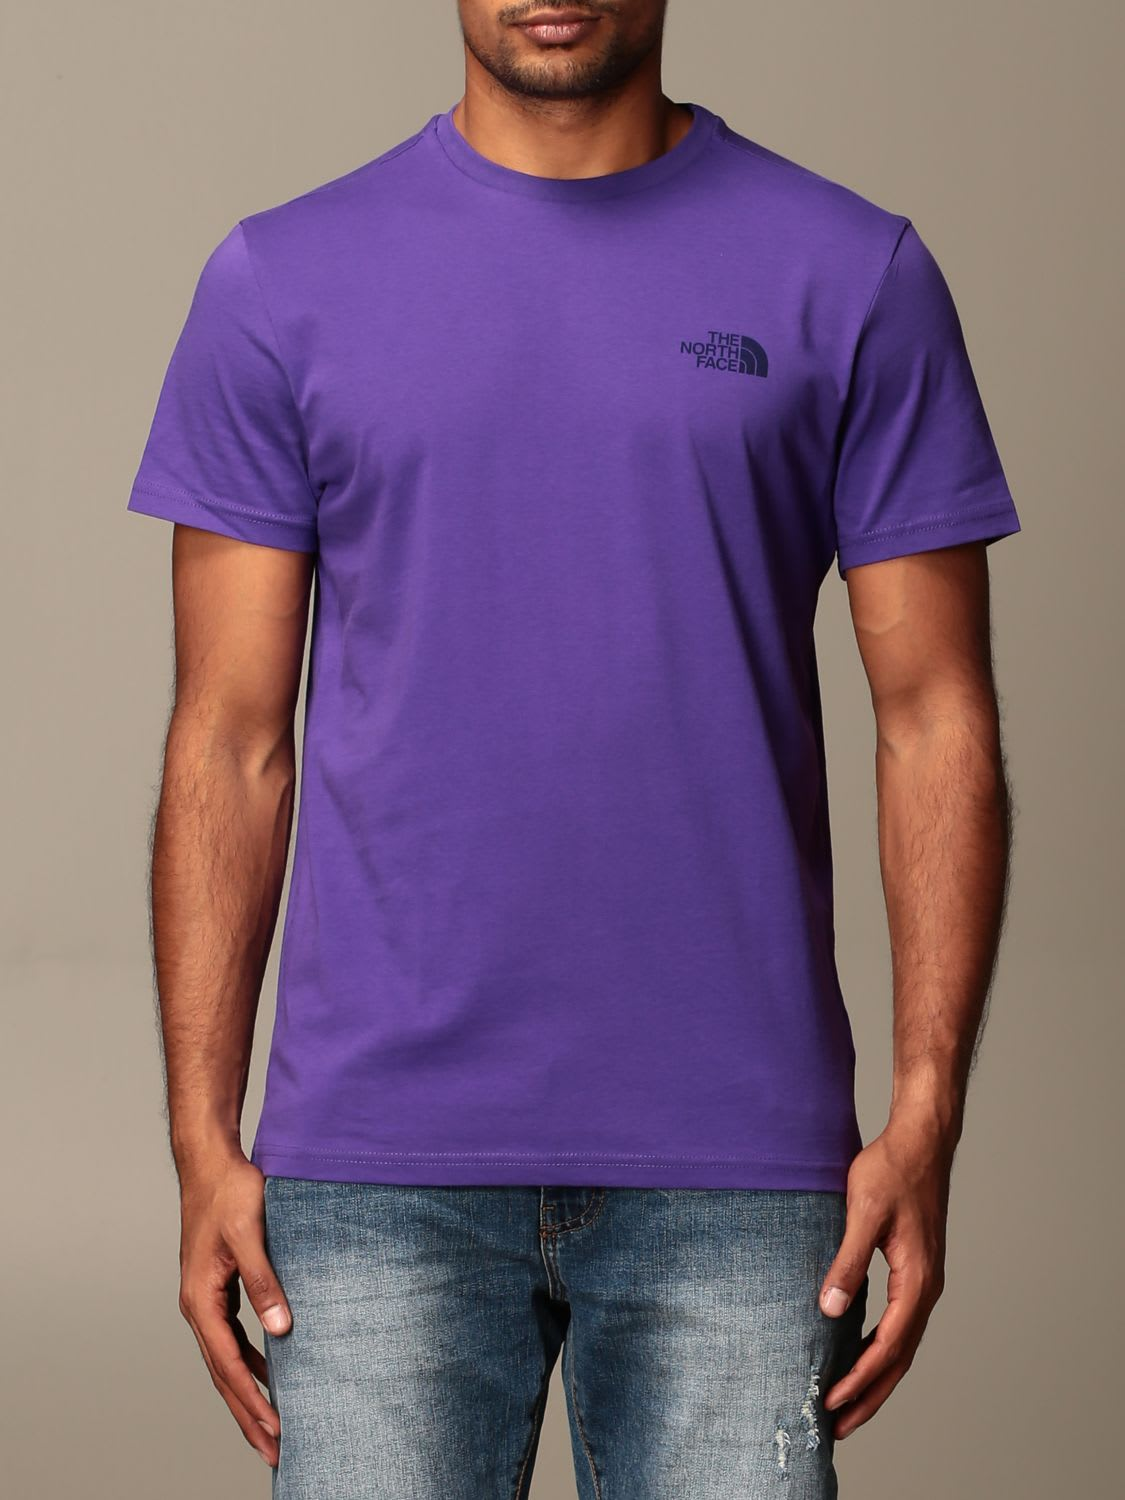 The North Face T-shirt T-shirt Men The North Face